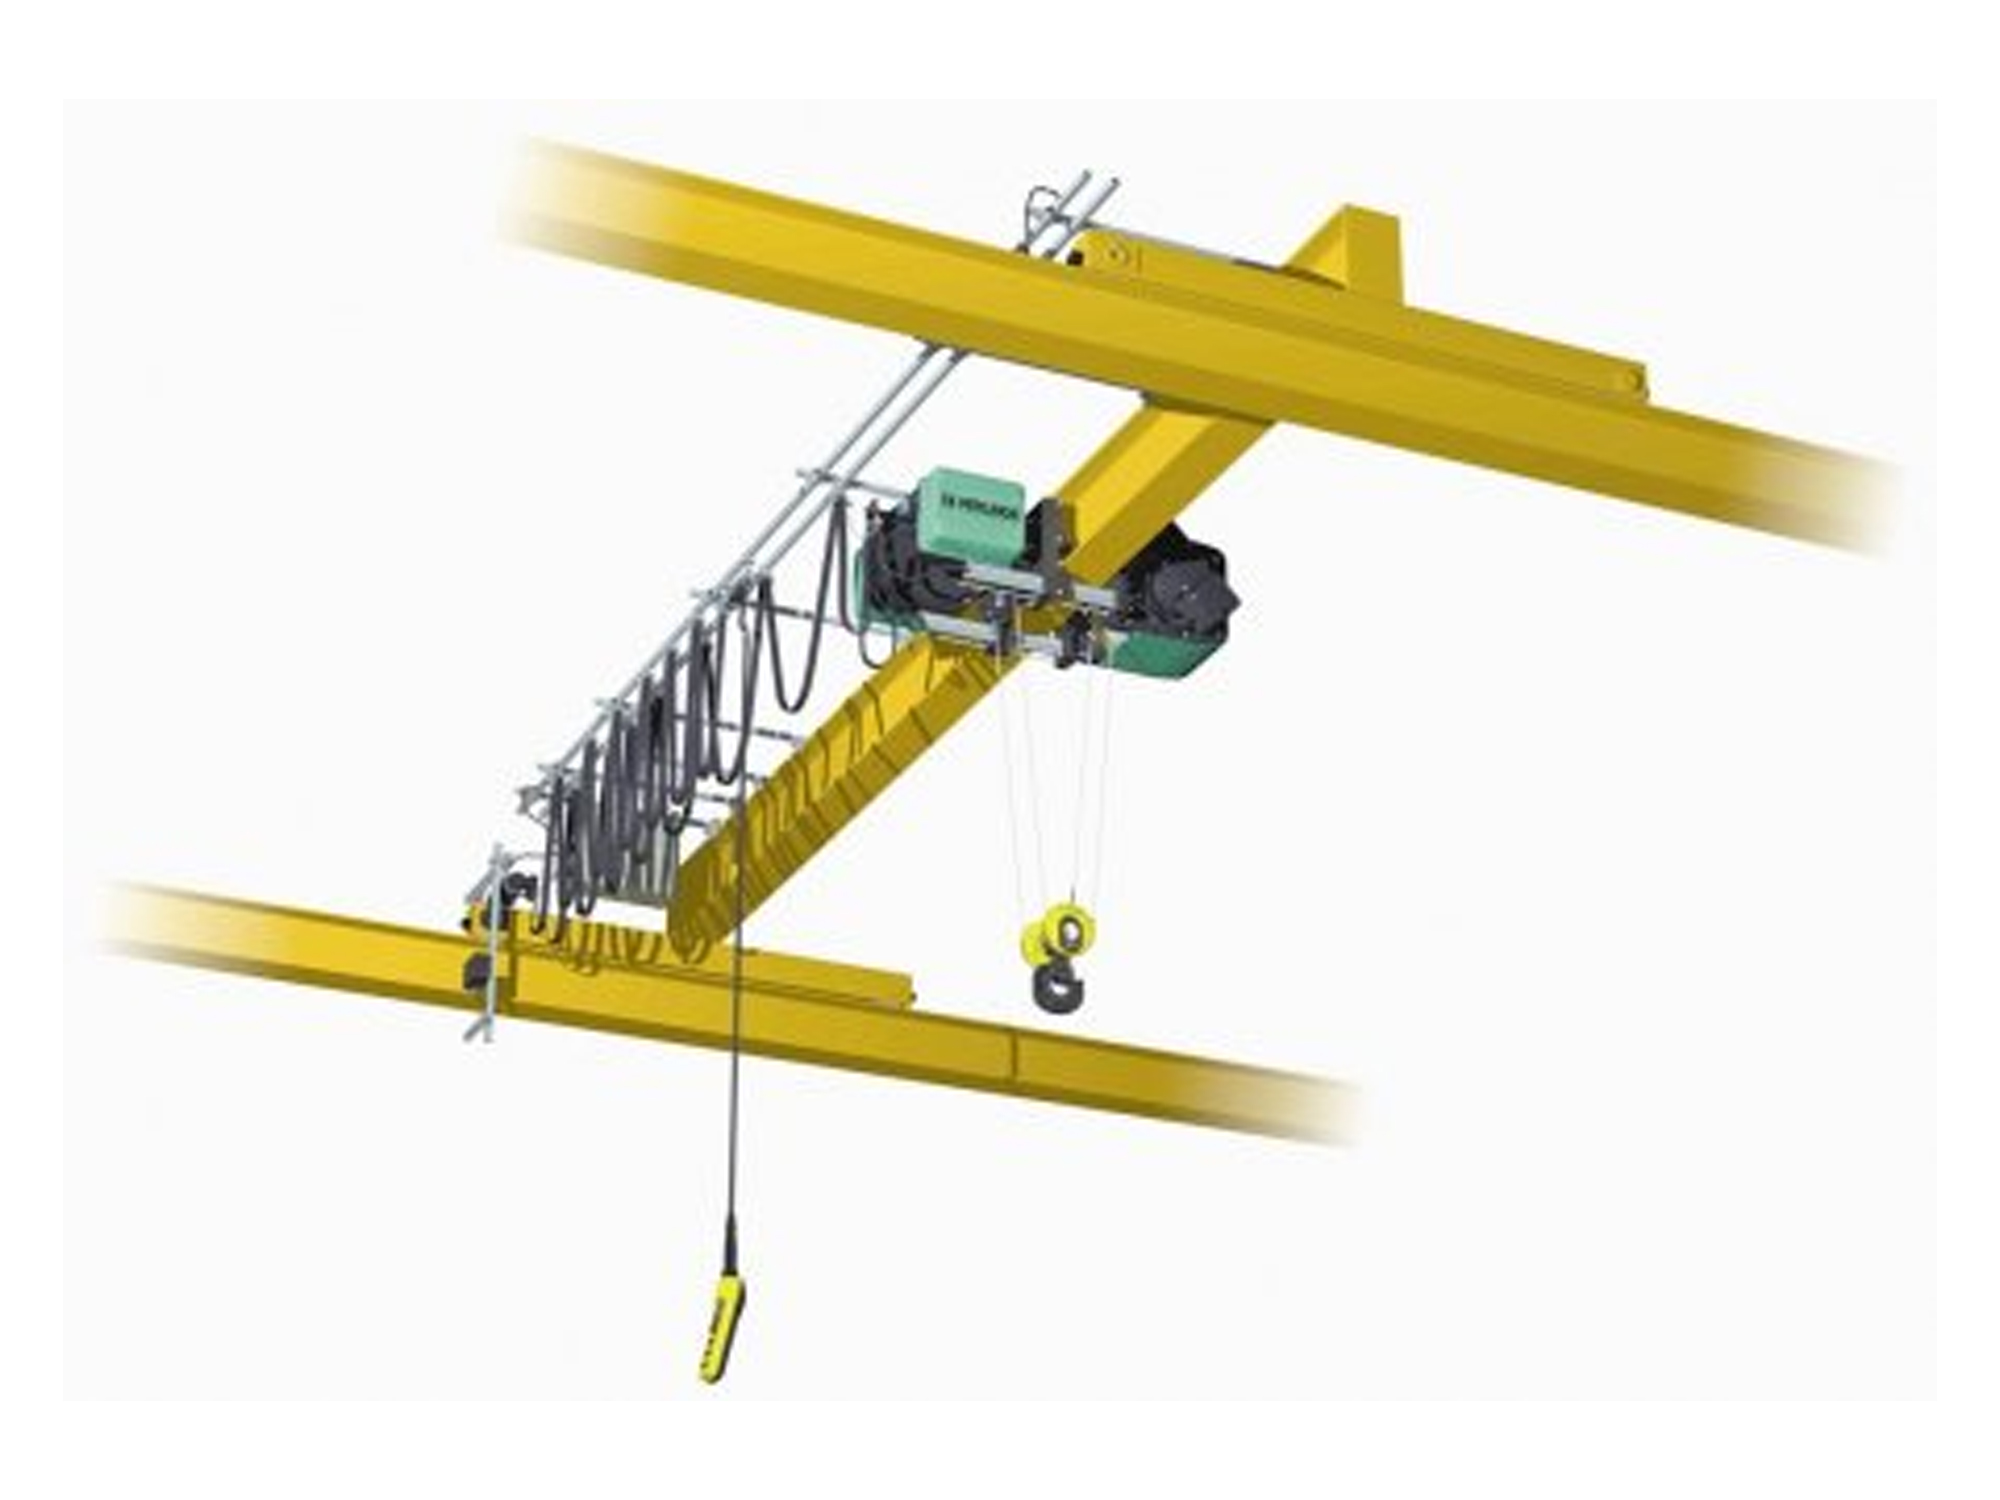 Hoist UK - Overhead Crane with Electric Wire Rope Hoist